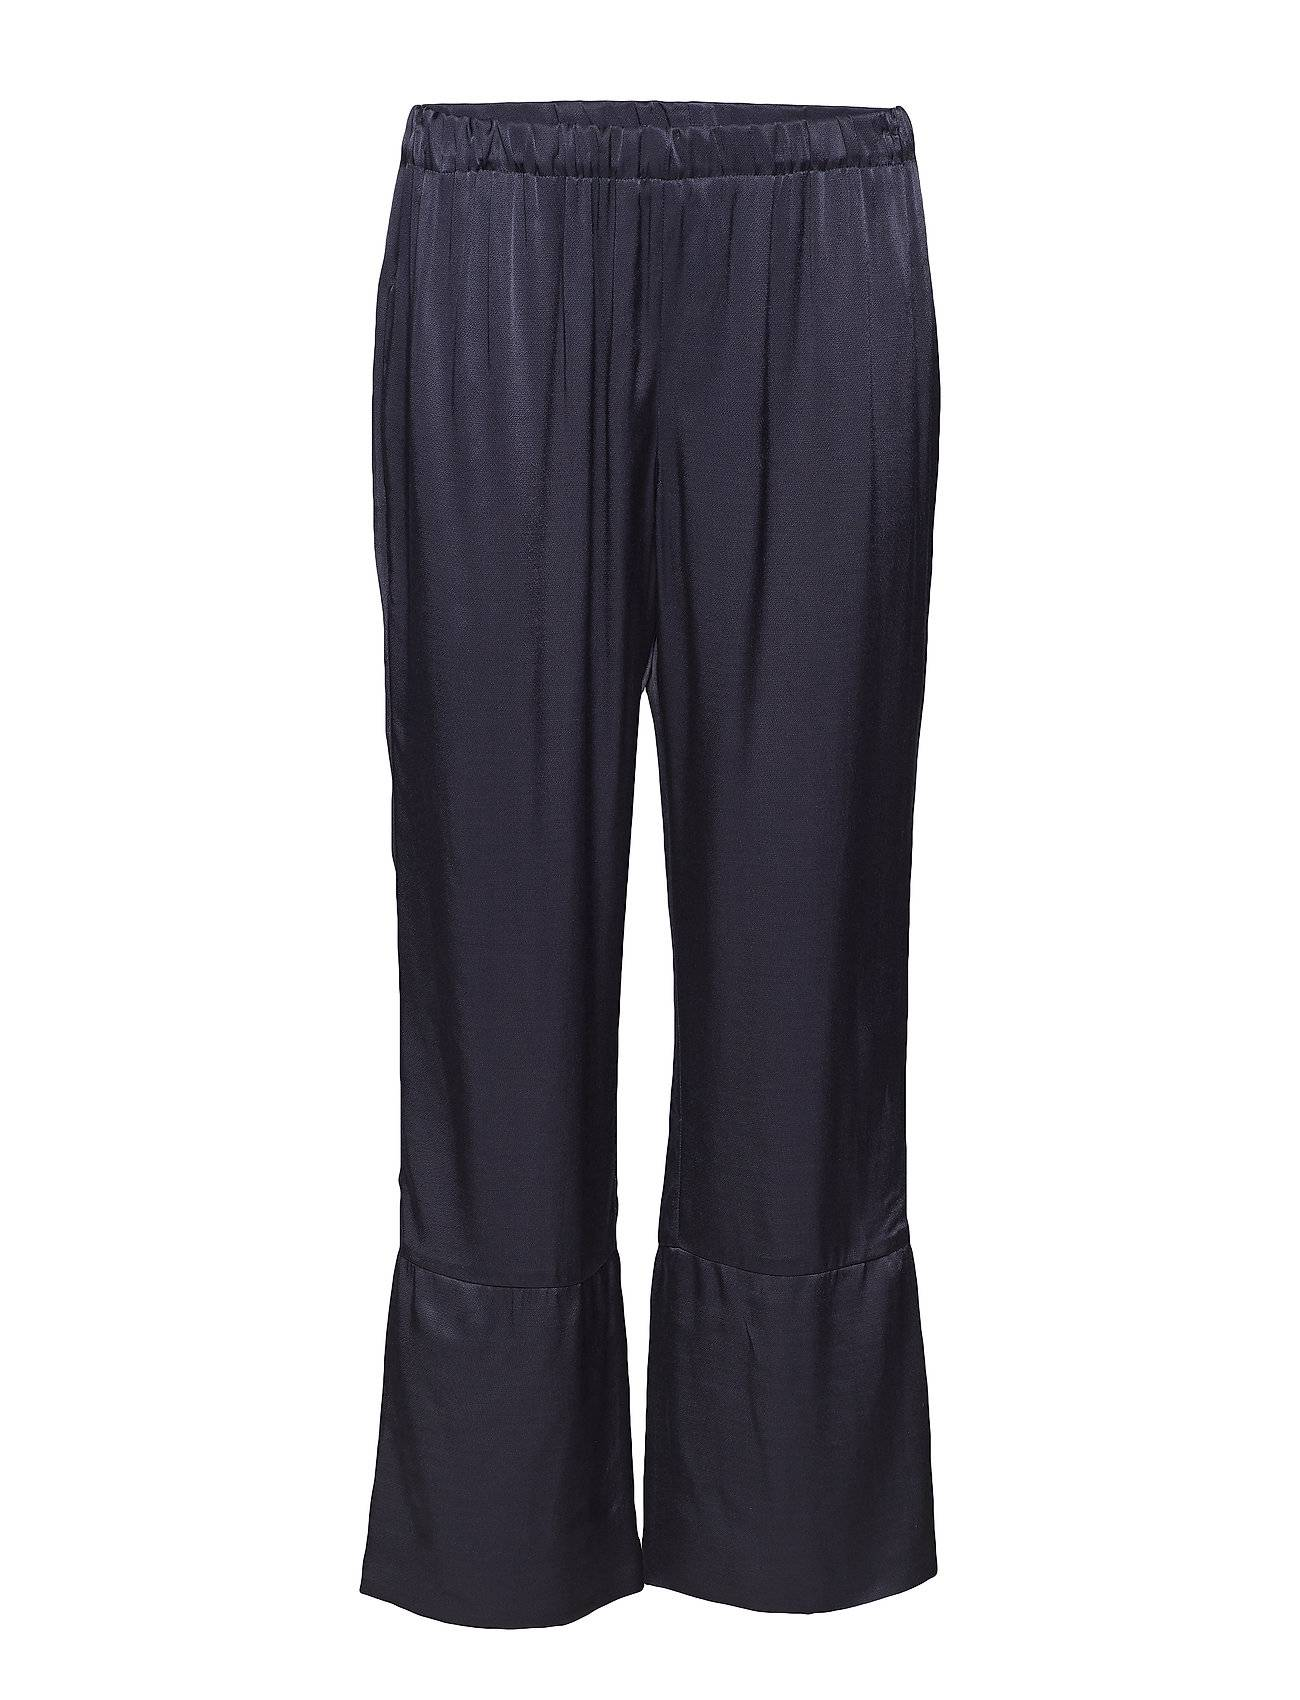 Diana Orving Trousers